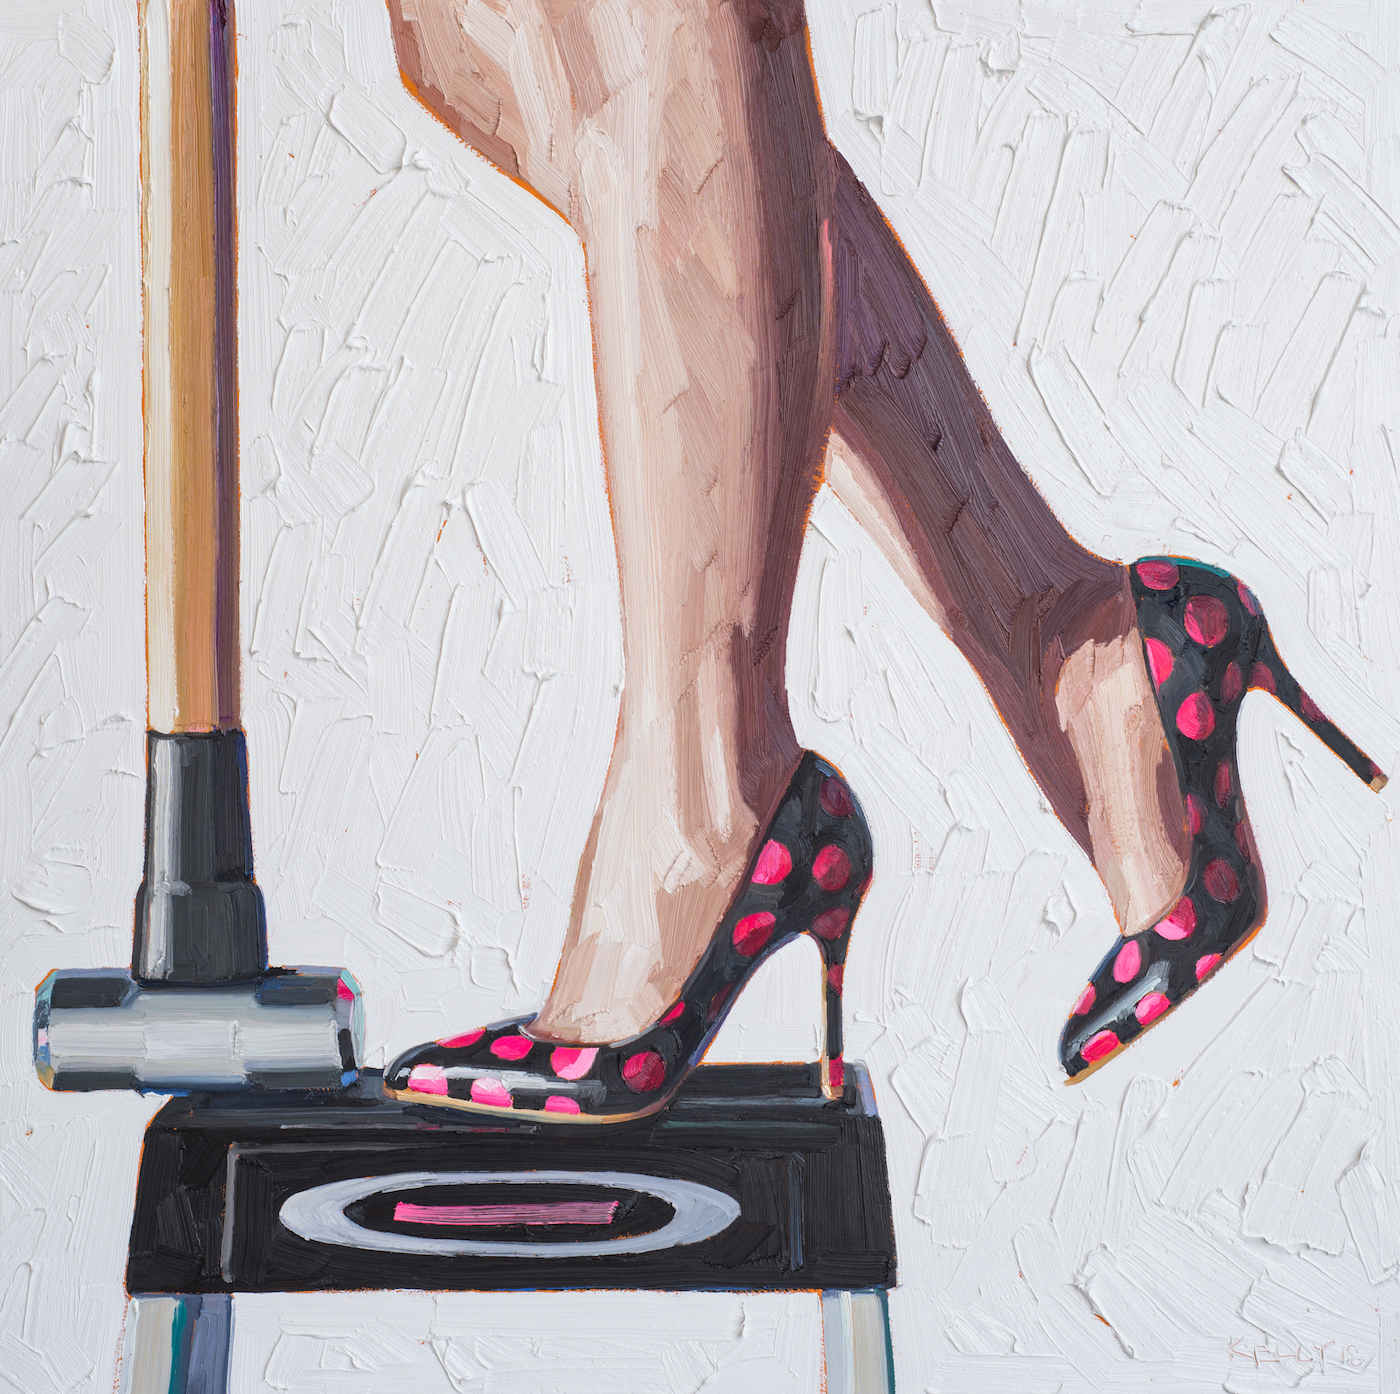 Leg Up_oil on panel_2018_lille.jpg